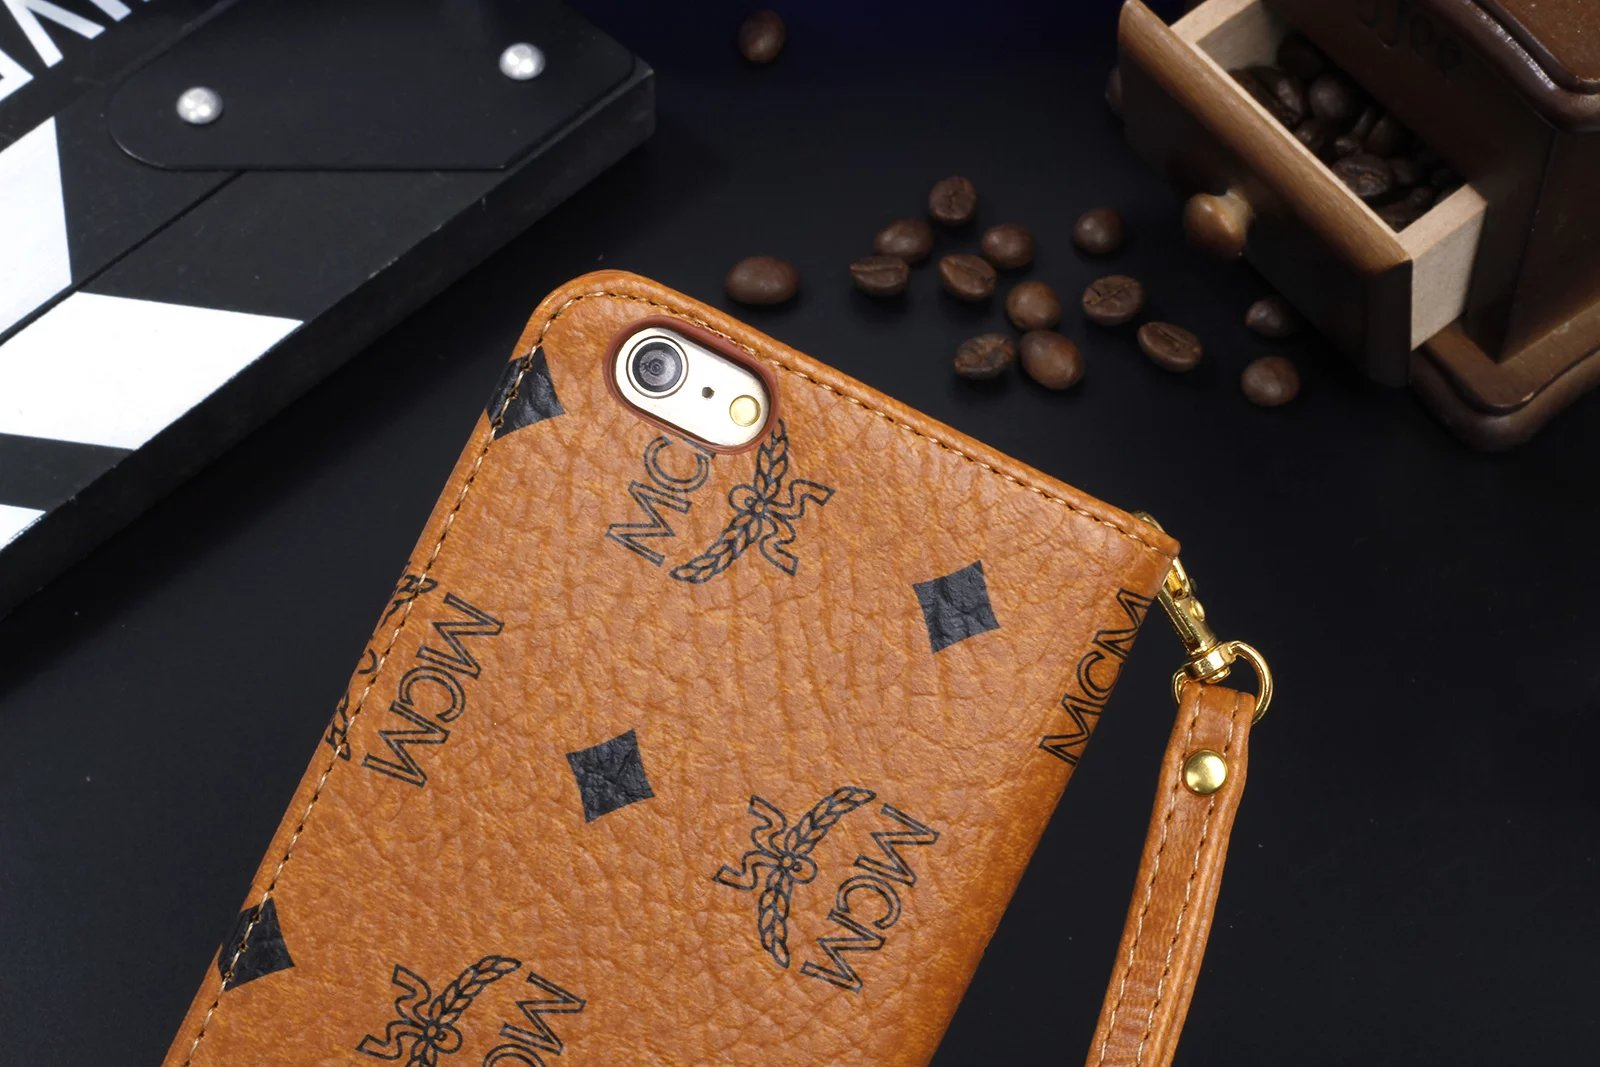 iphone schutzhülle selbst gestalten hülle für iphone Modern Creation München iphone 8 Plus hüllen apple ca8 Plus E metallhülle iphone 8 Plus iphone zoll handy cover iphone 8 Plus 8 Pluslbst gestalten 8 Plus oder 8 Plus iphone hüllen günstig